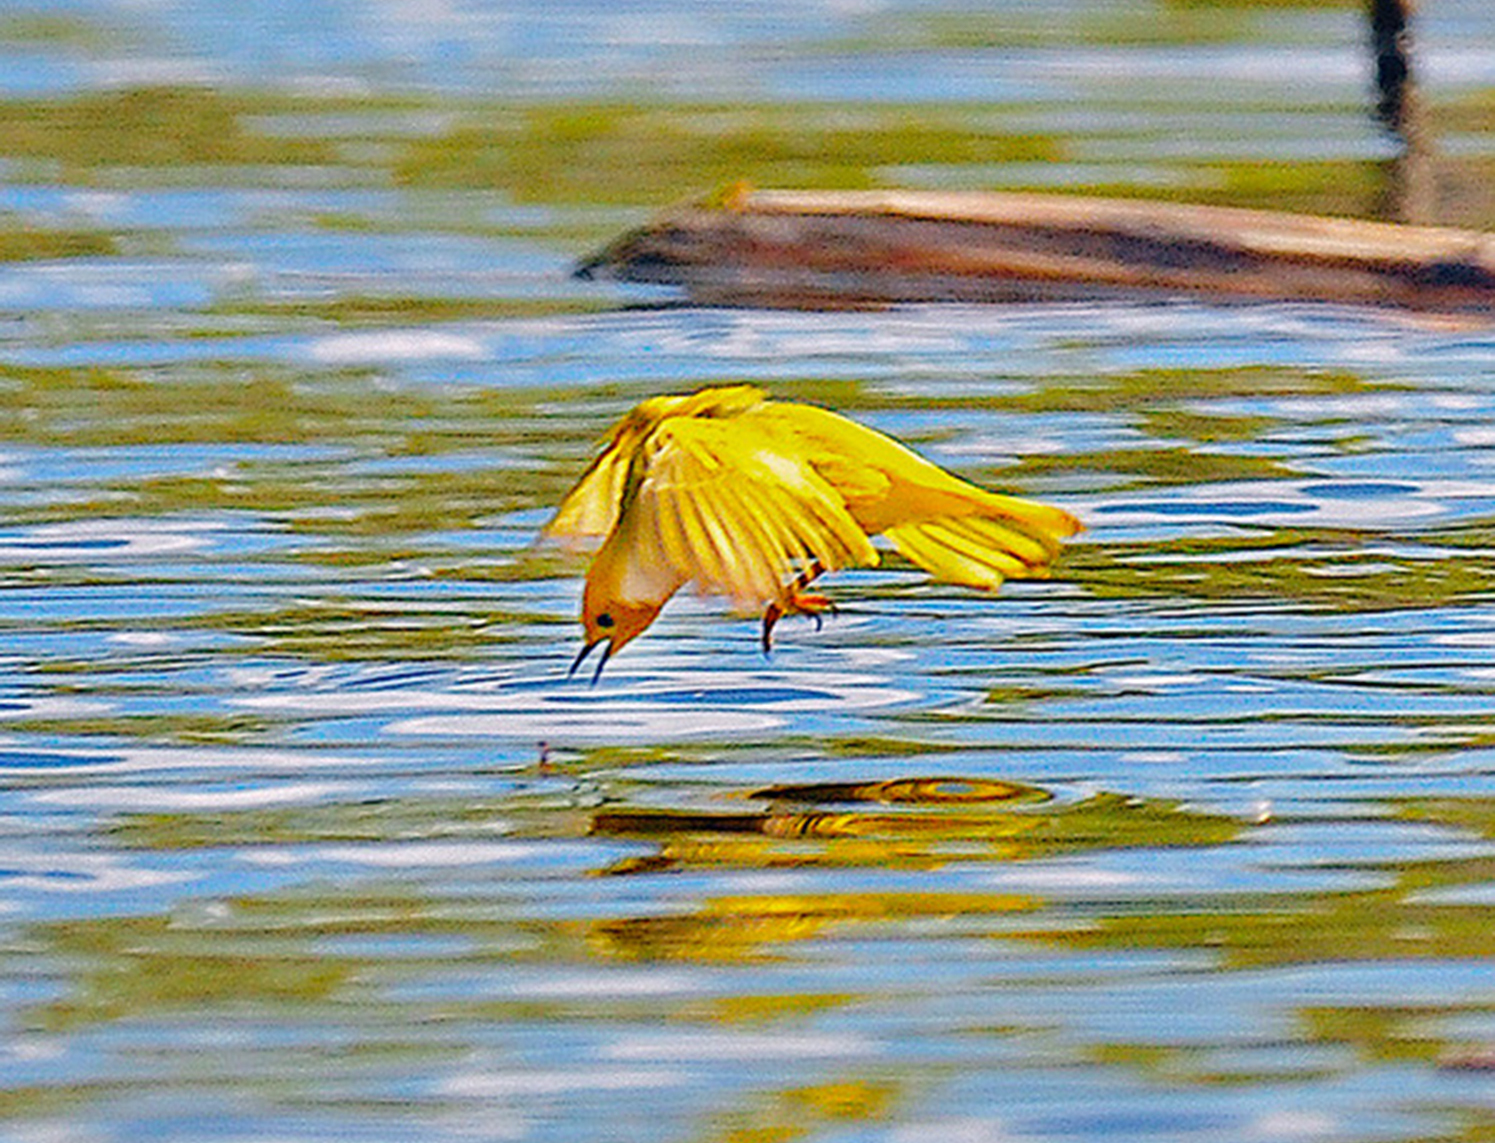 A yellow warbler swoops down for insects.